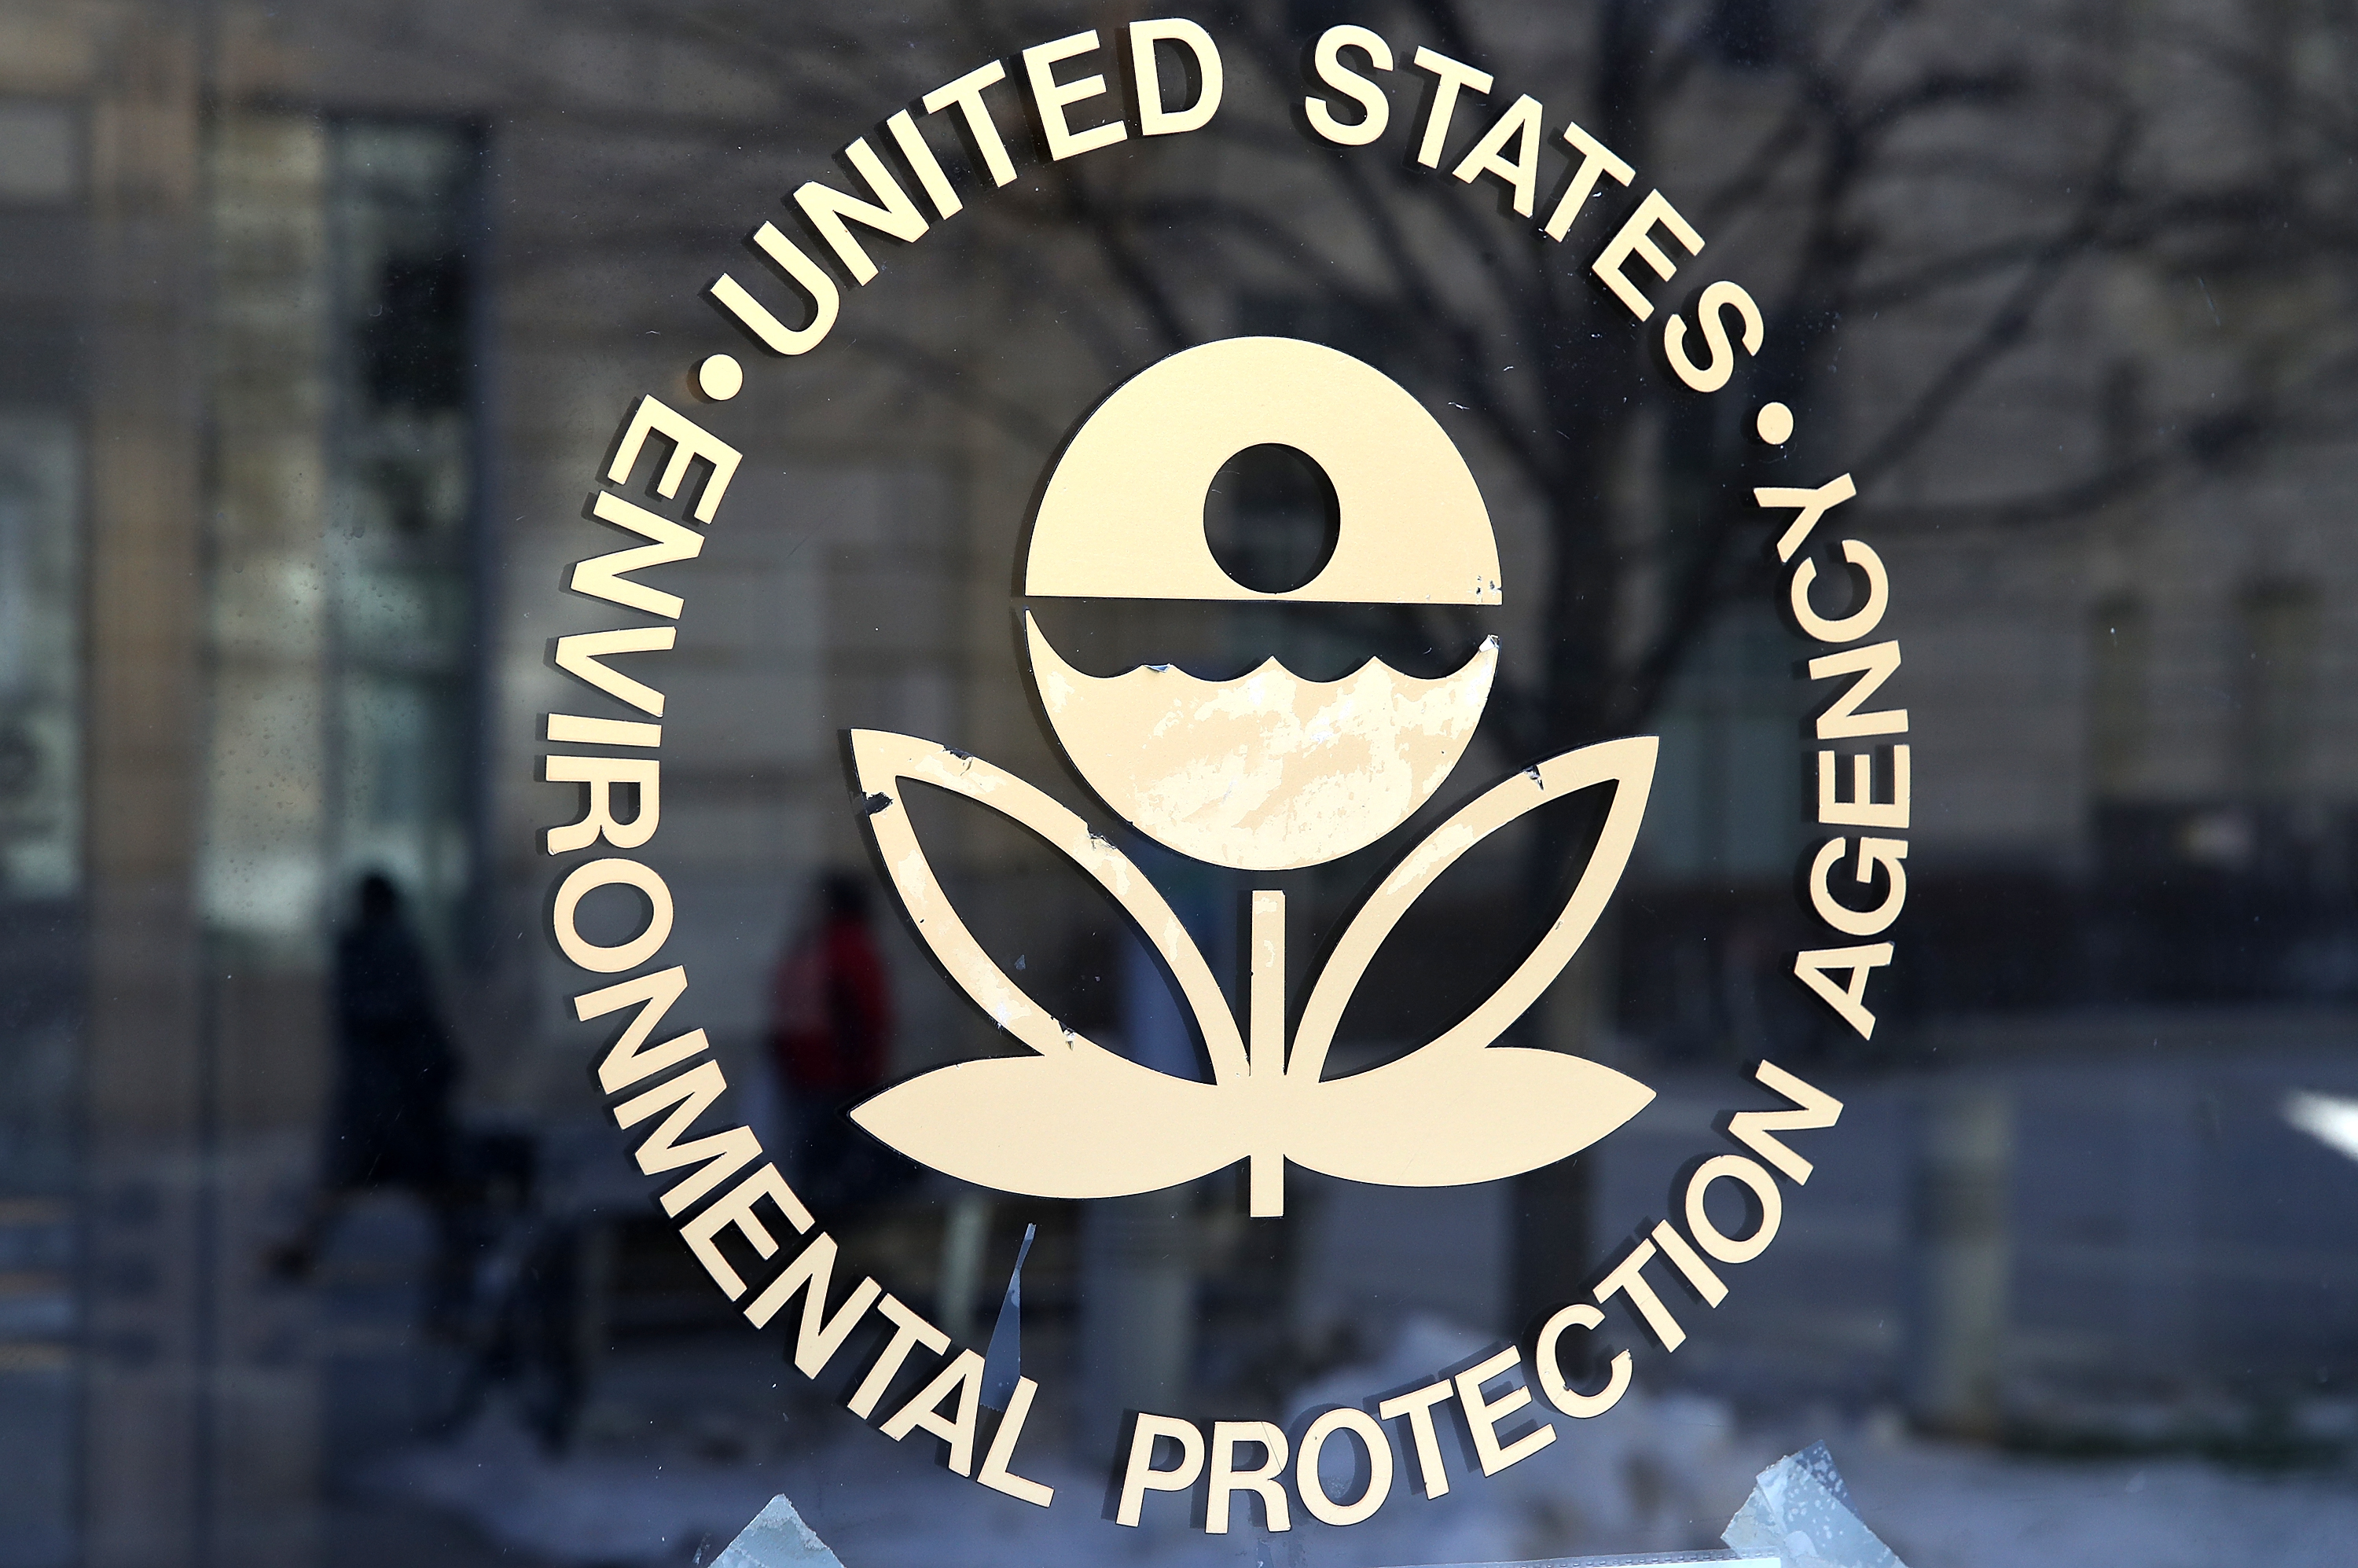 EPA replaces Trump-era chemical guidance, calling it 'compromised' by politics